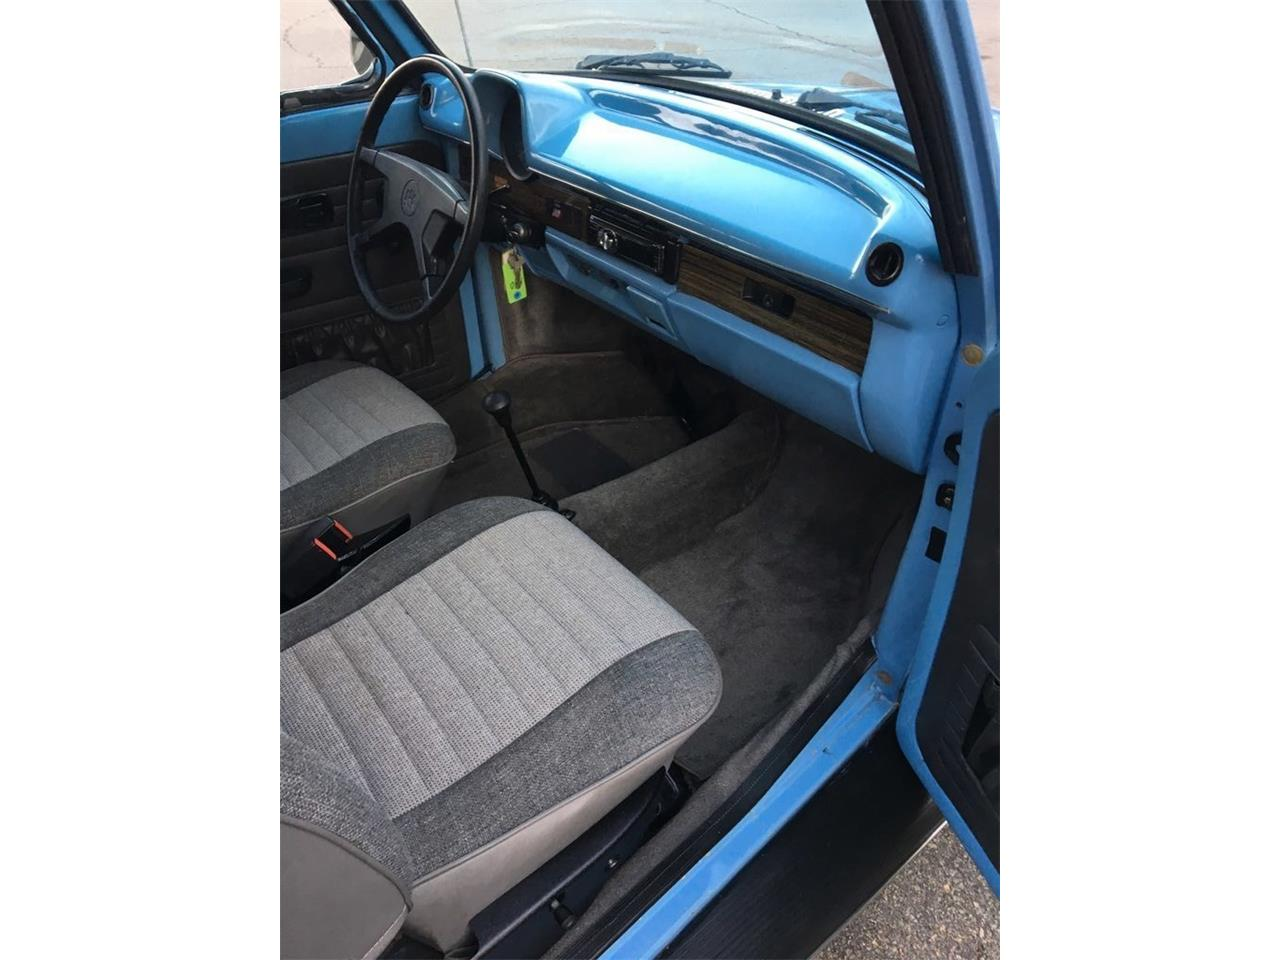 Large Picture of '74 Volkswagen Beetle located in Greensboro North Carolina Auction Vehicle - MTD4